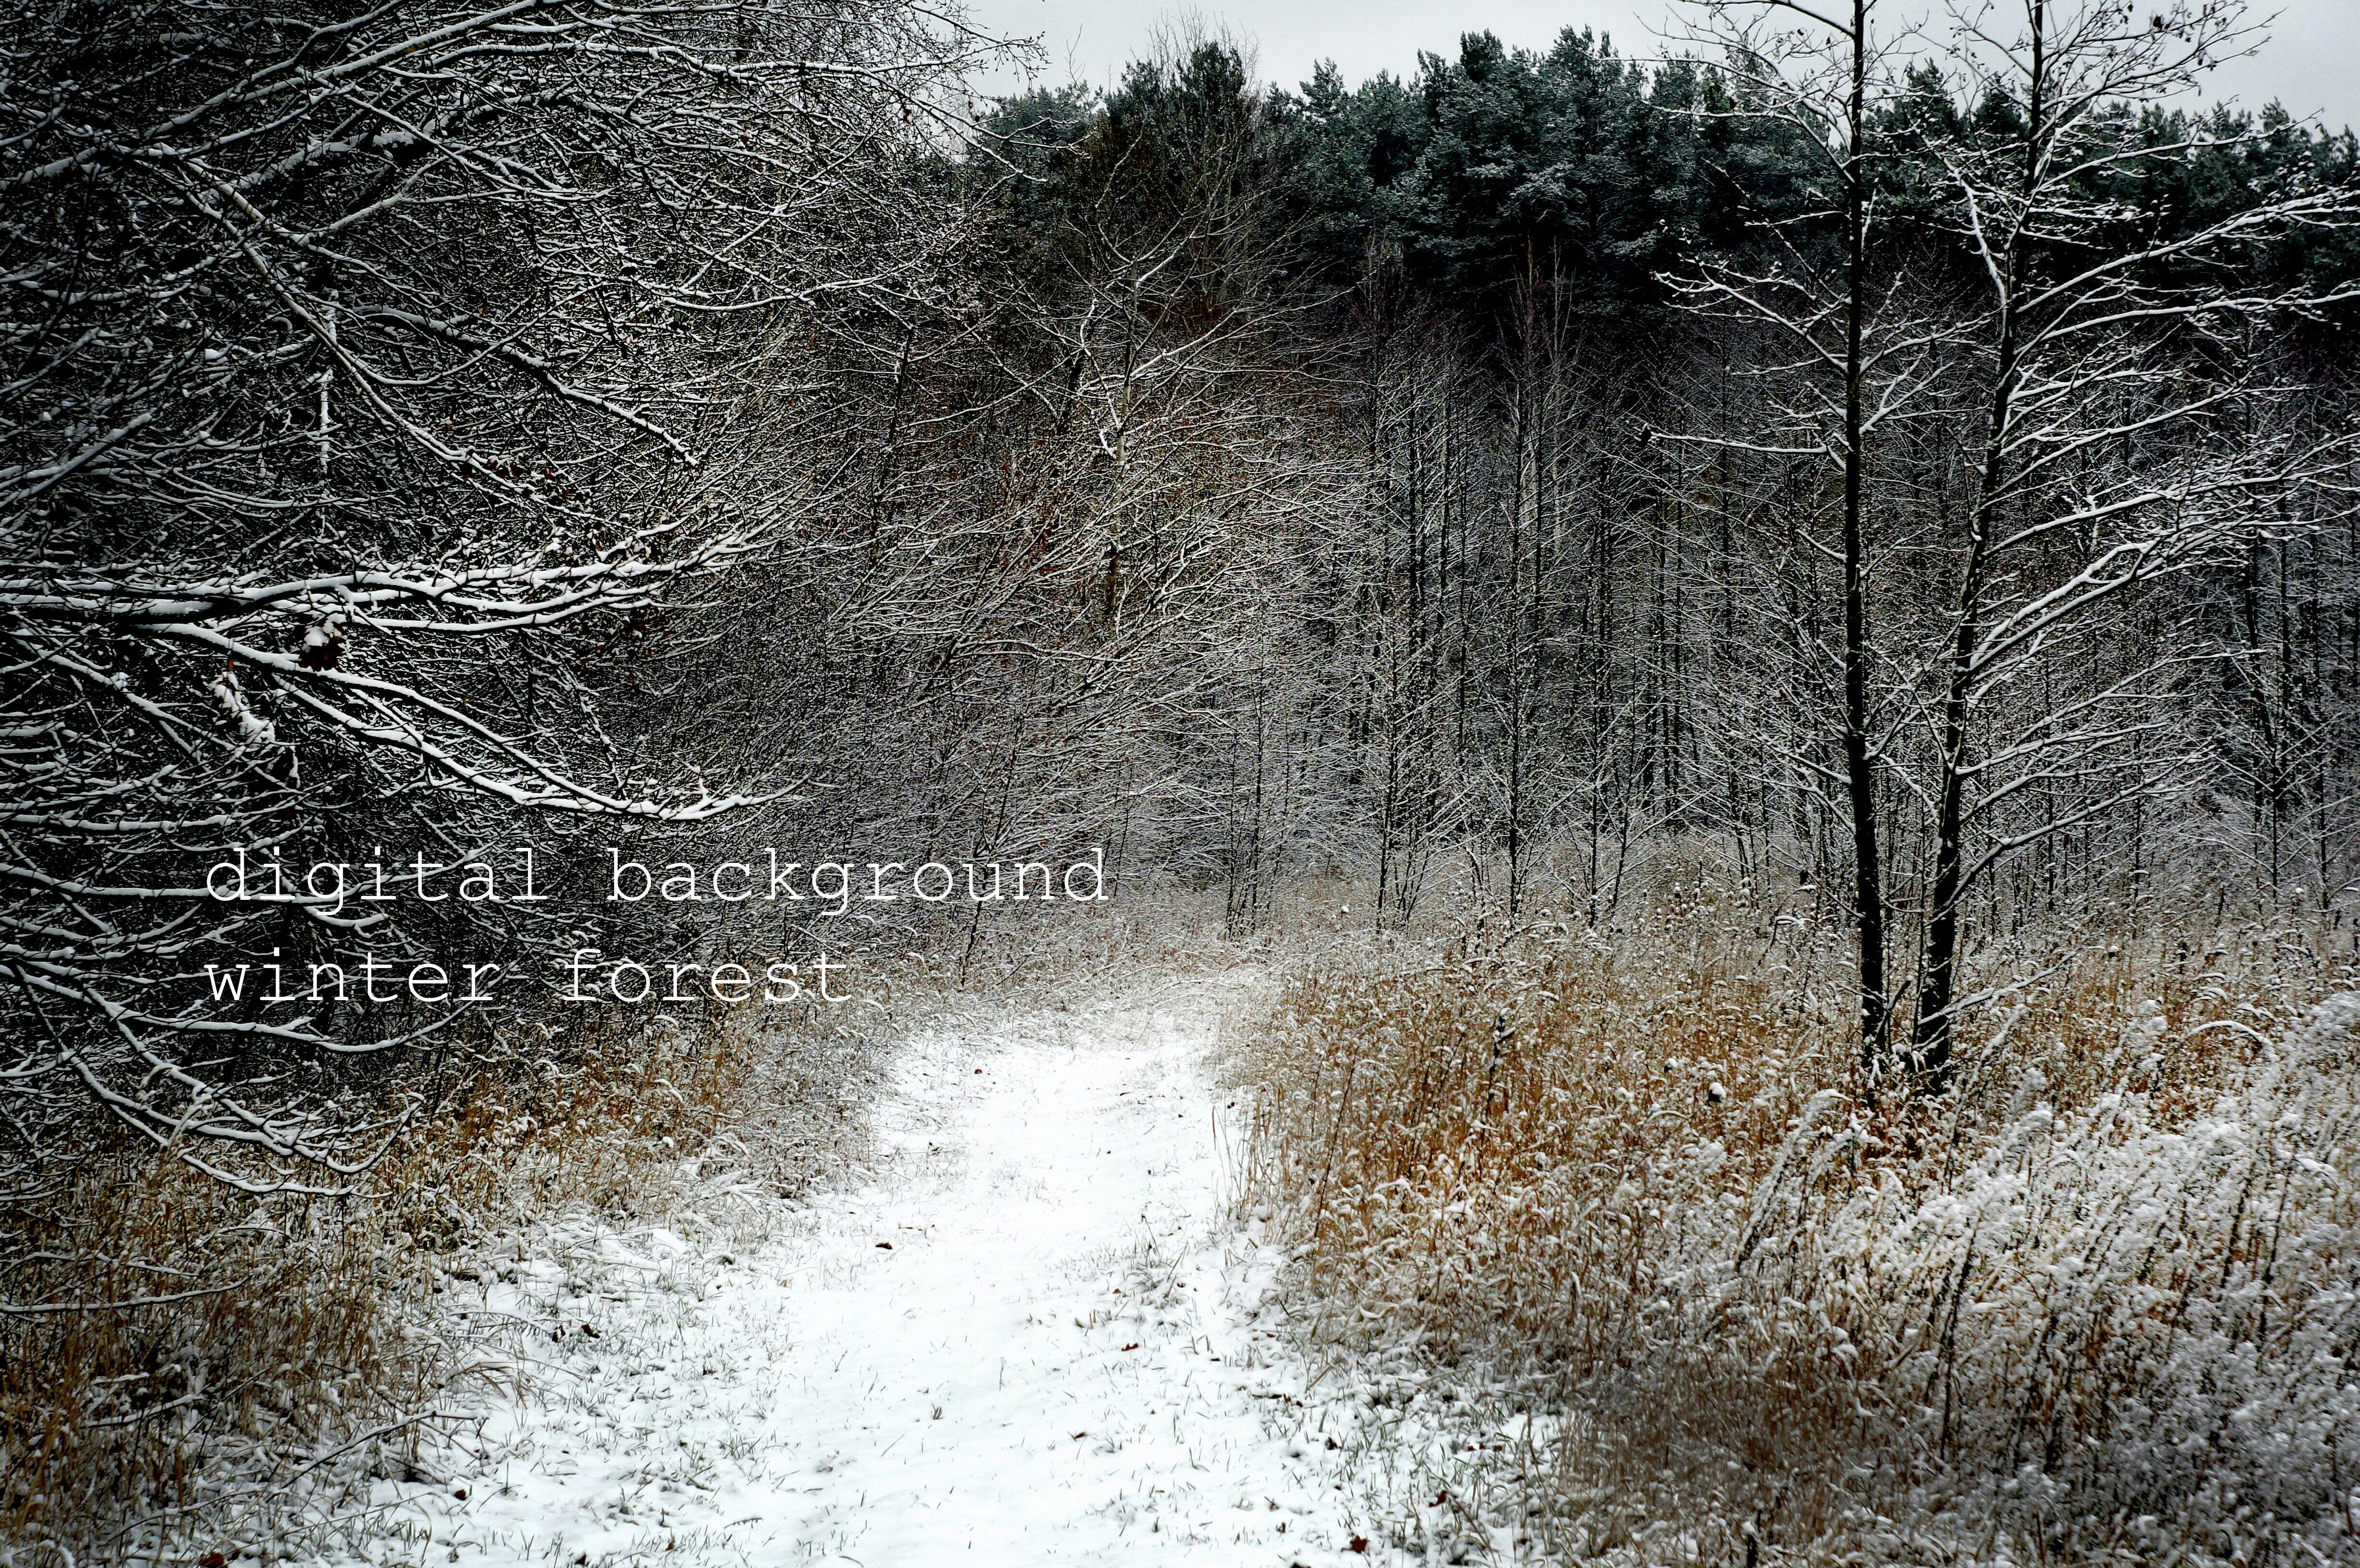 Winter Forest Winter Landscape Winter Forest Print Winter Wounderland Winter Photography Forest Wall Art Christmas Background Photoshop Winter Landscape Winter Photography Photoshop Digital Background